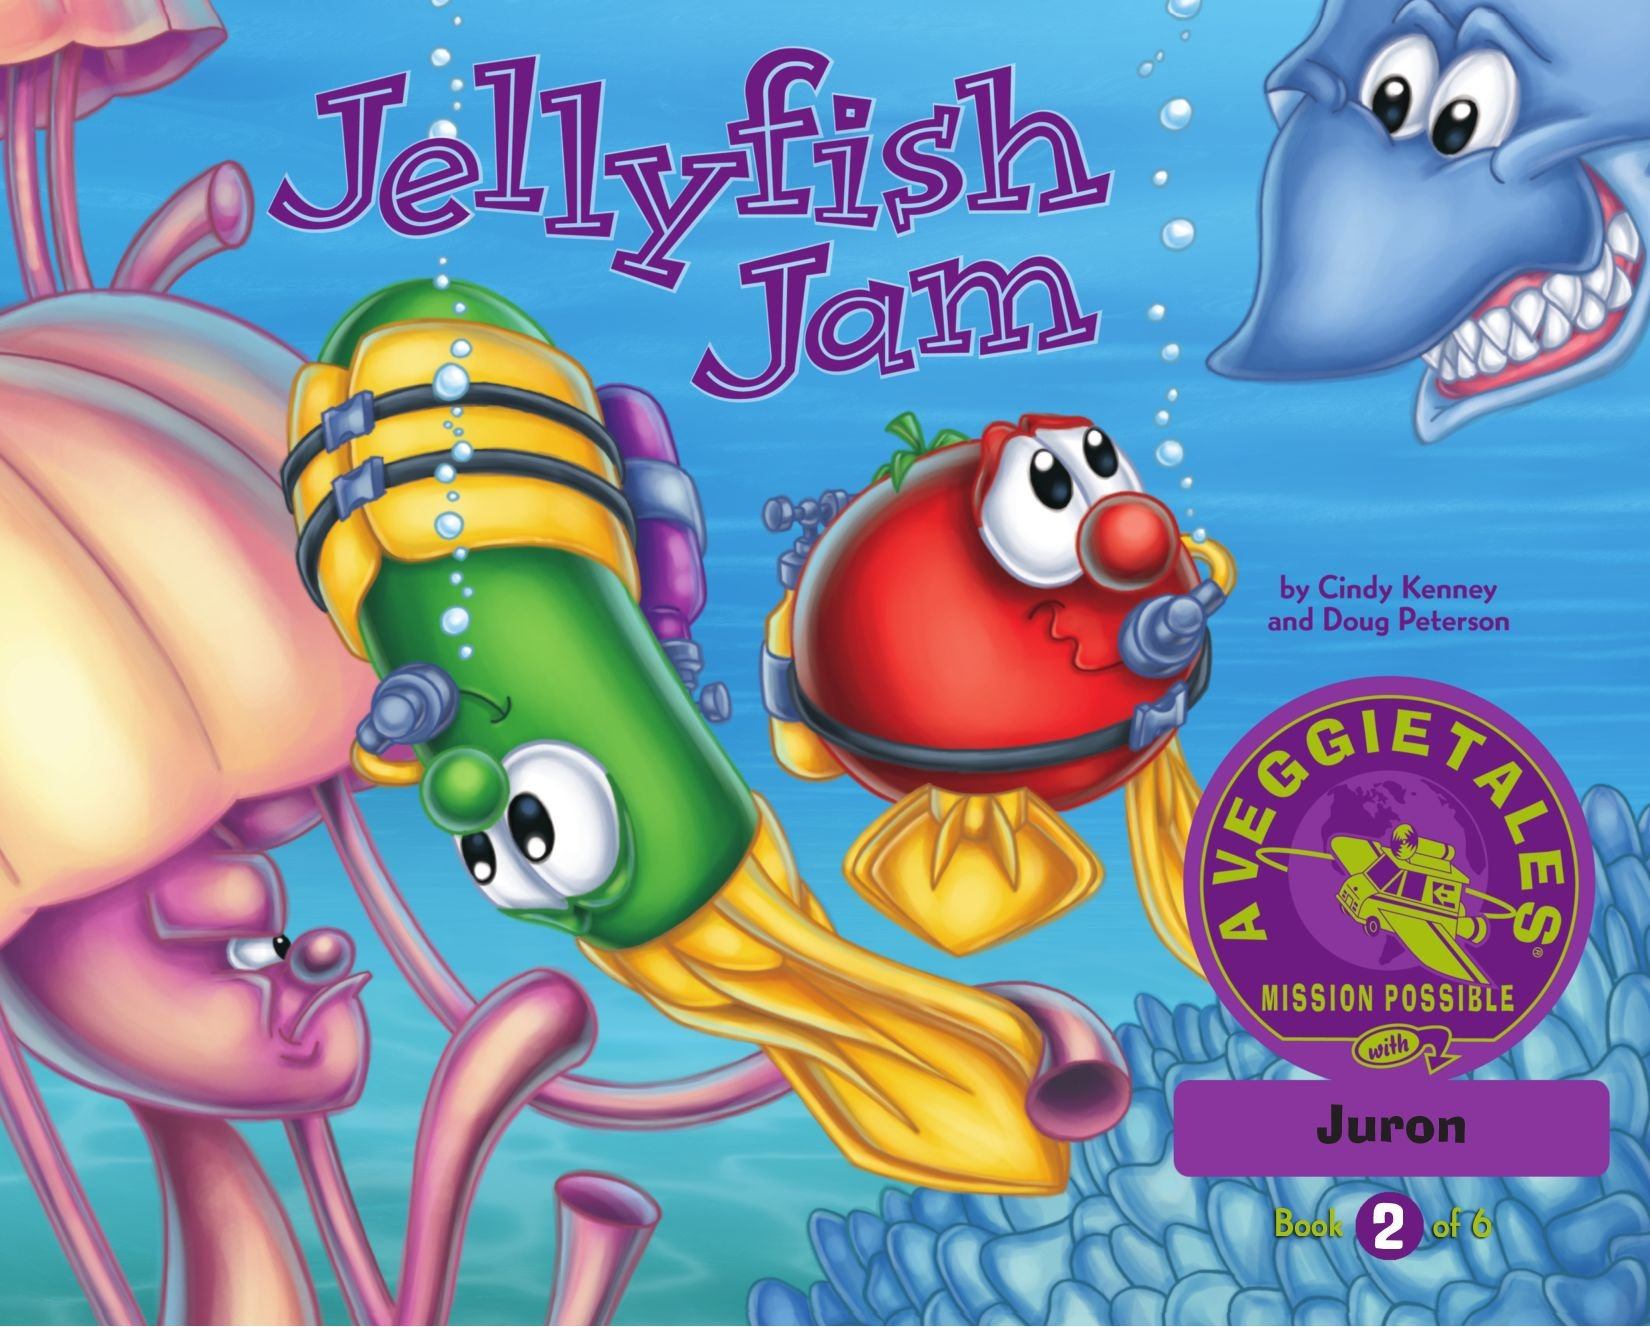 Download Jellyfish Jam - VeggieTales Mission Possible Adventure Series #2: Personalized for Juron (Boy) ebook